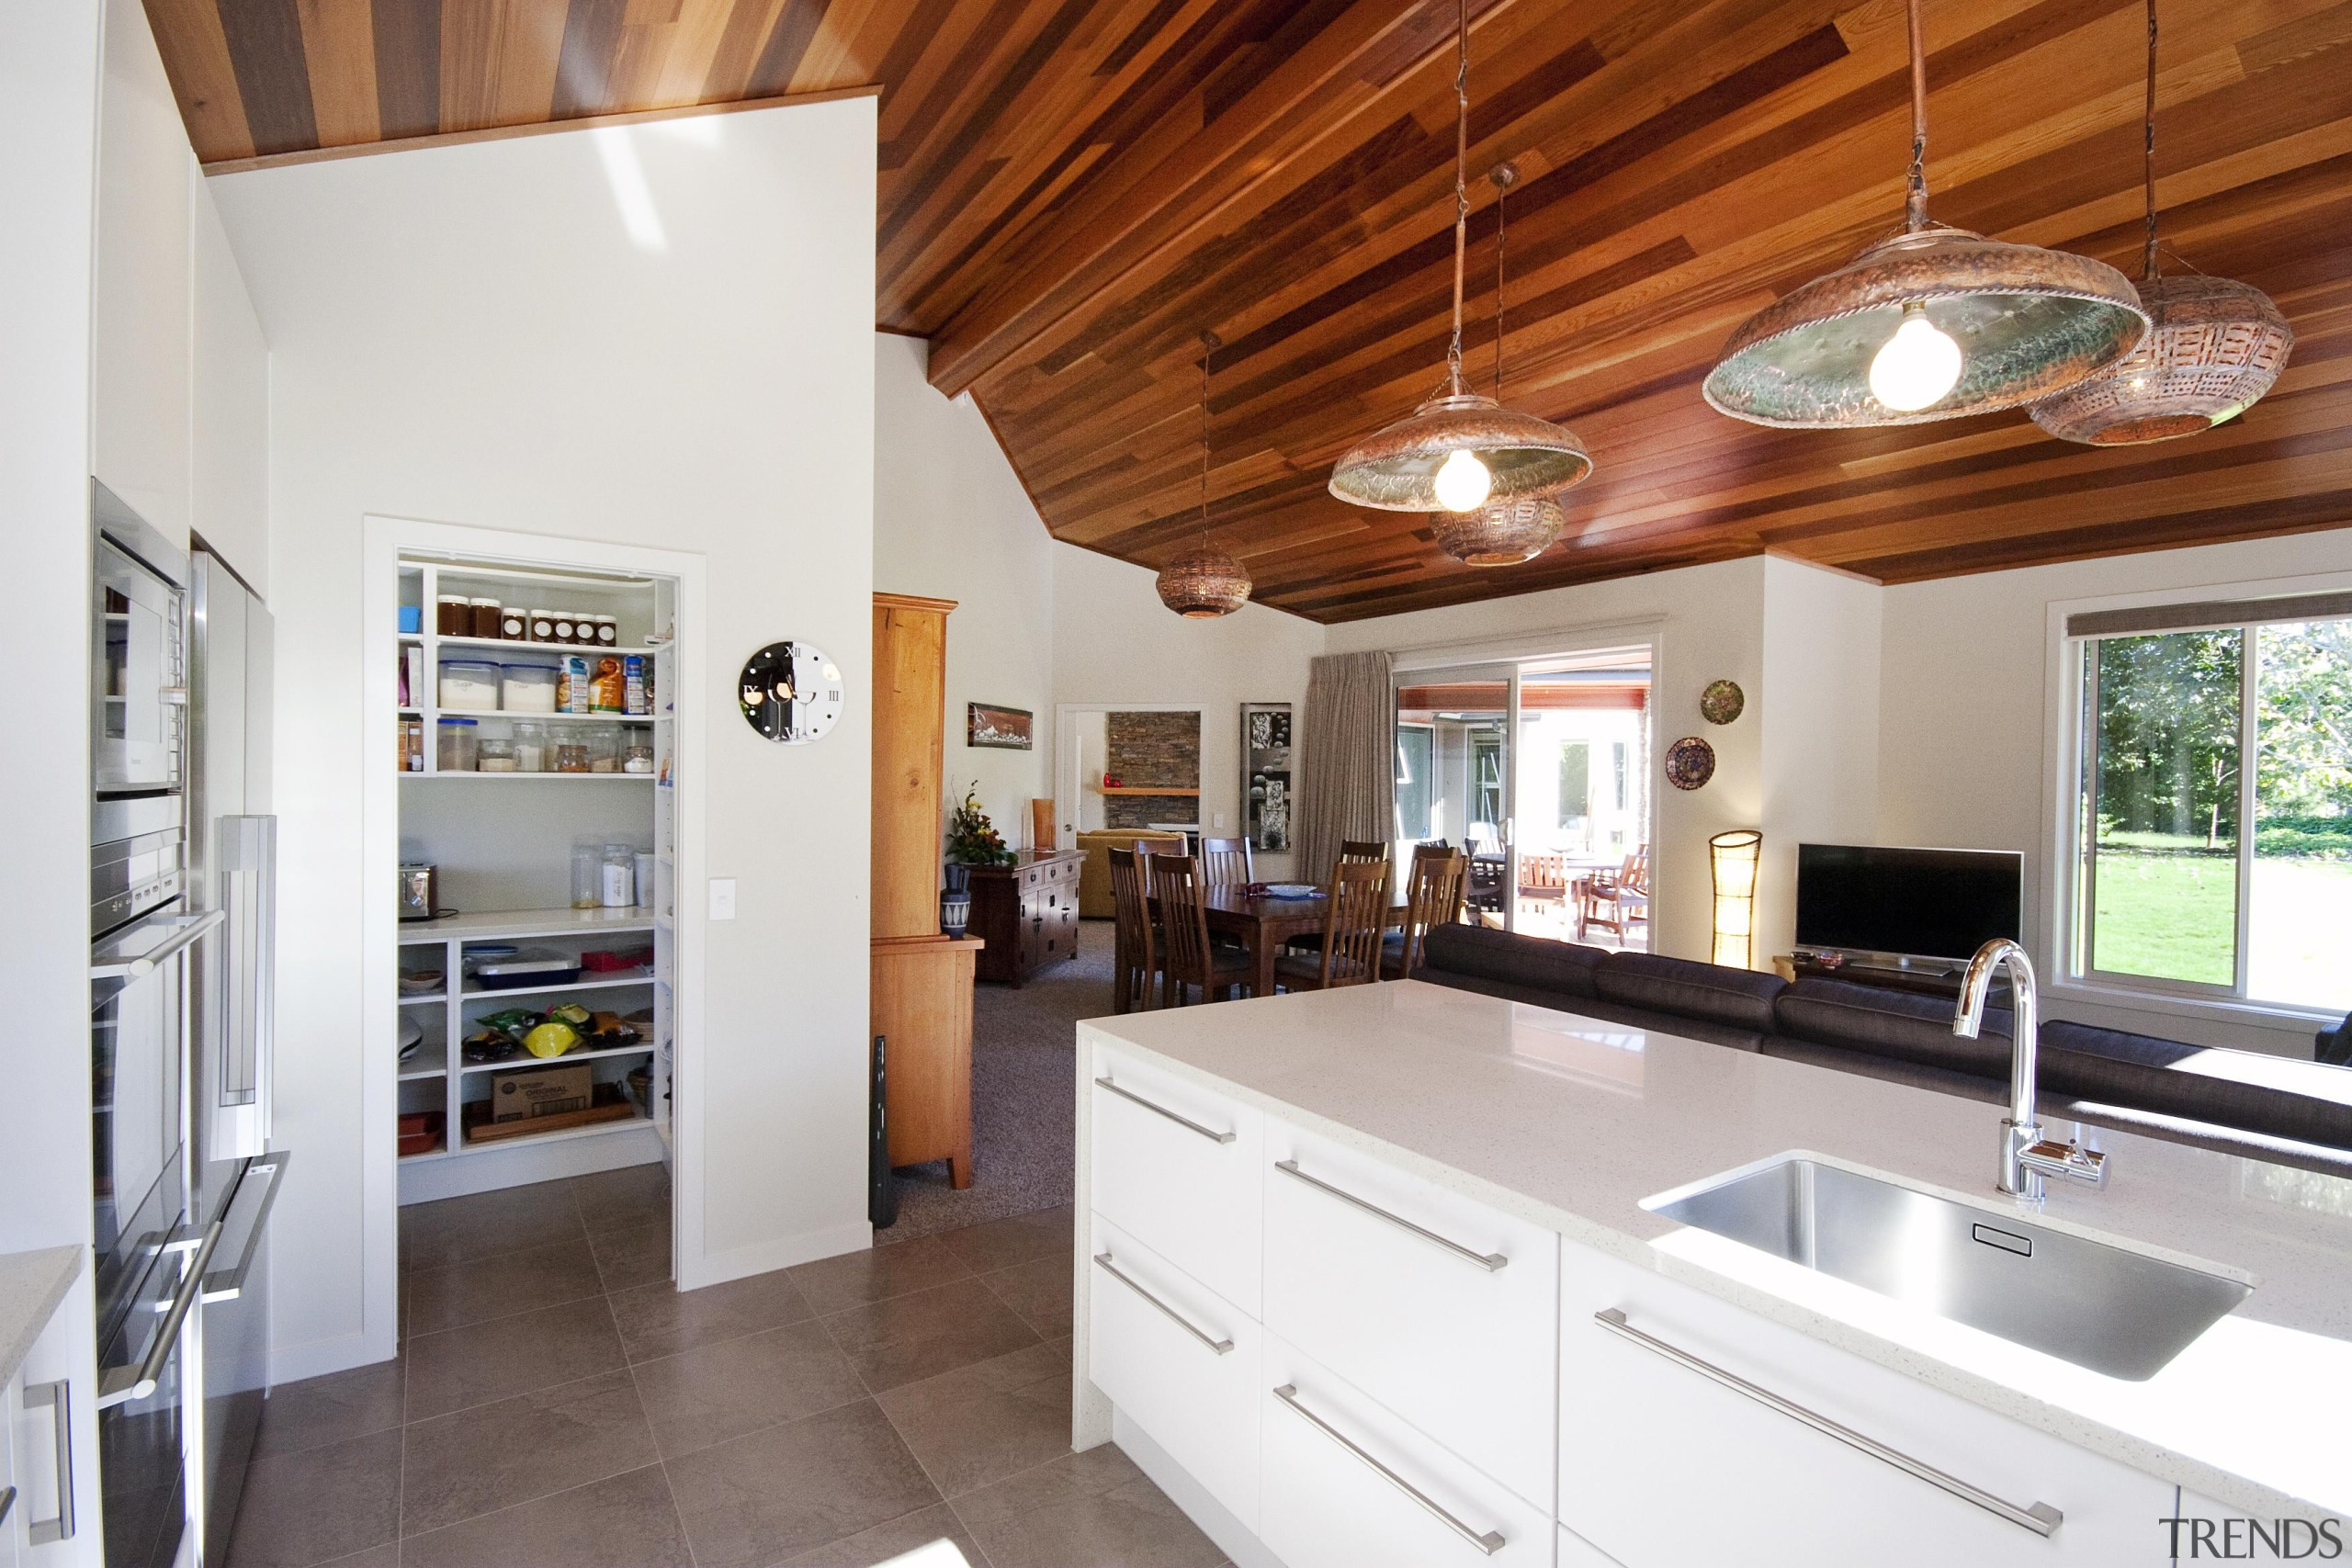 White kitchen with separate pantry. Home built by countertop, cuisine classique, home, interior design, kitchen, property, real estate, room, gray